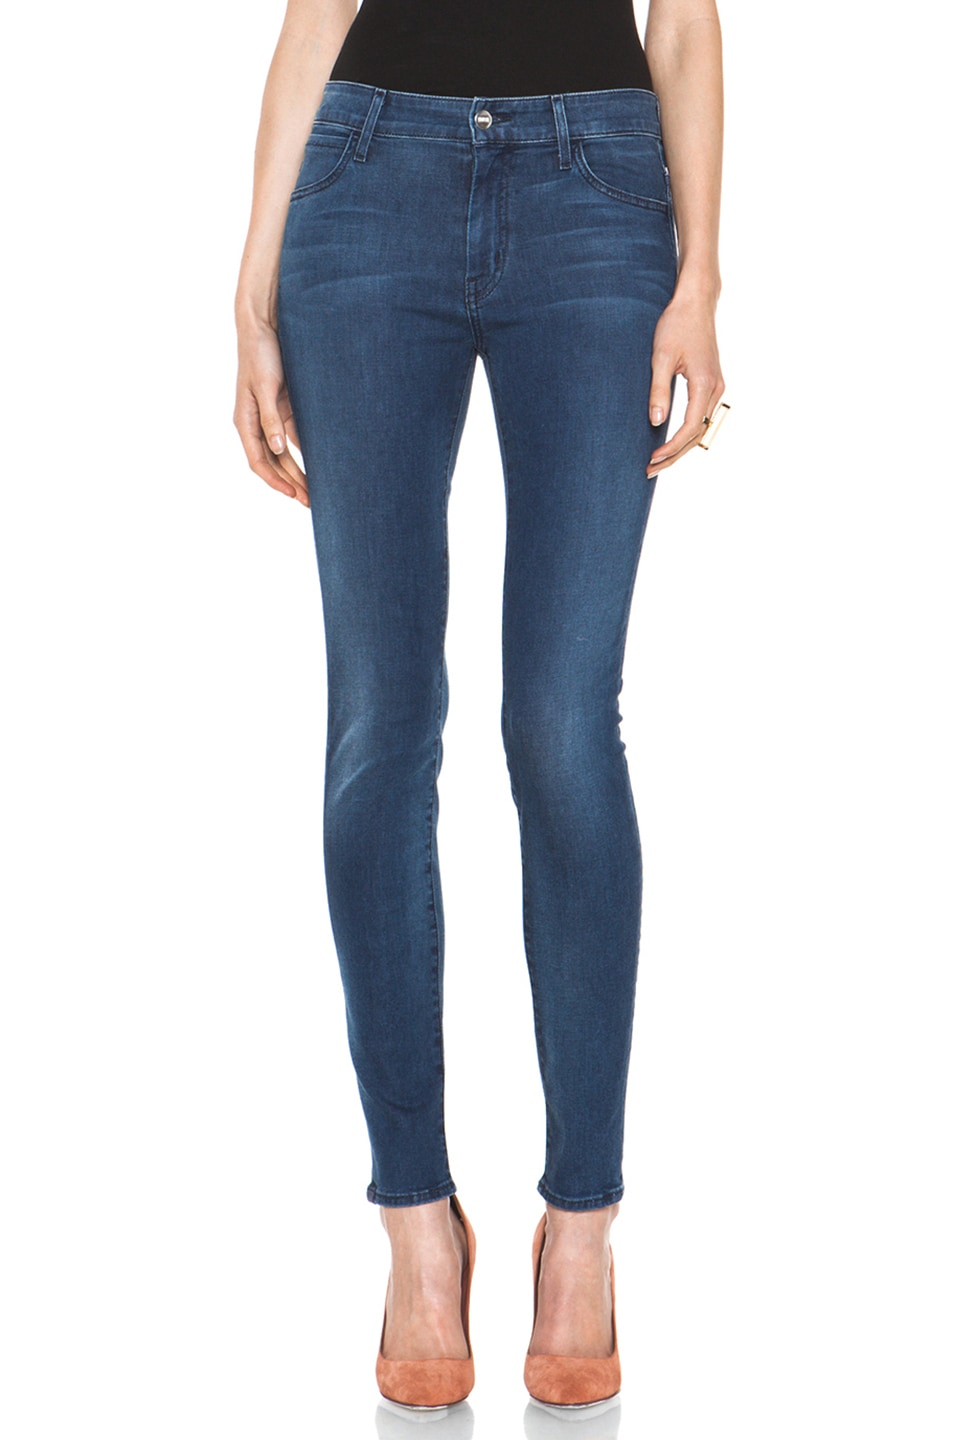 Image 1 of Koral November Twelve Coated High Rise Skinny in 12 Months